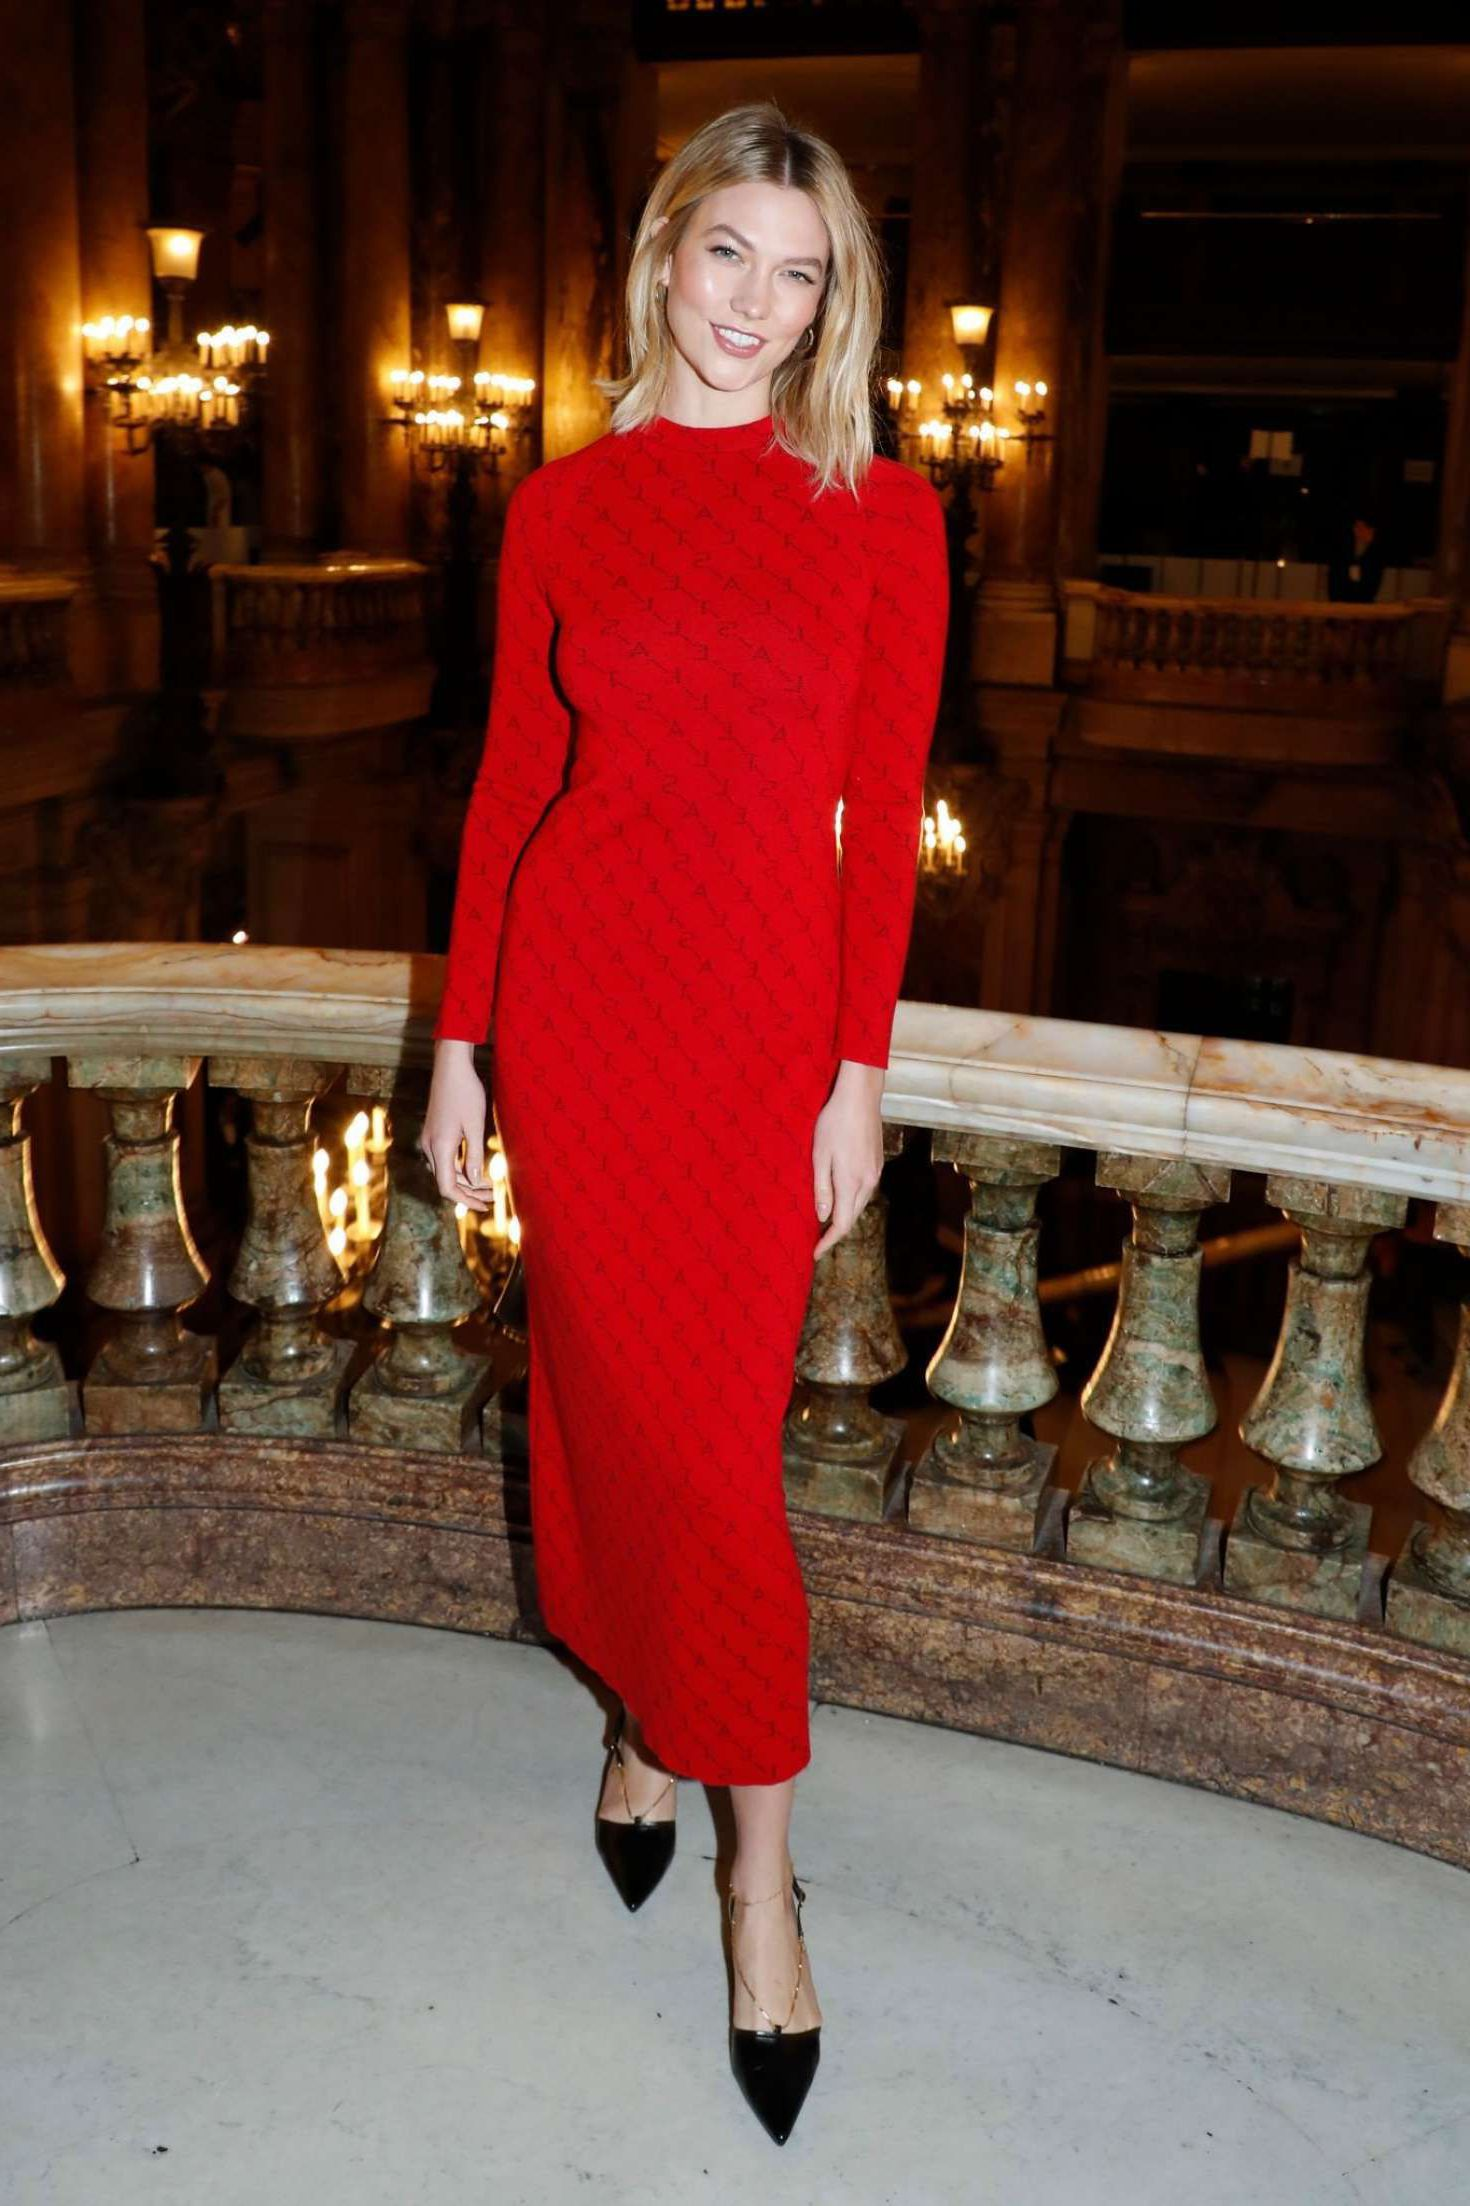 Photo 05: Karlie Kloss in red long dress, Paris, 2019